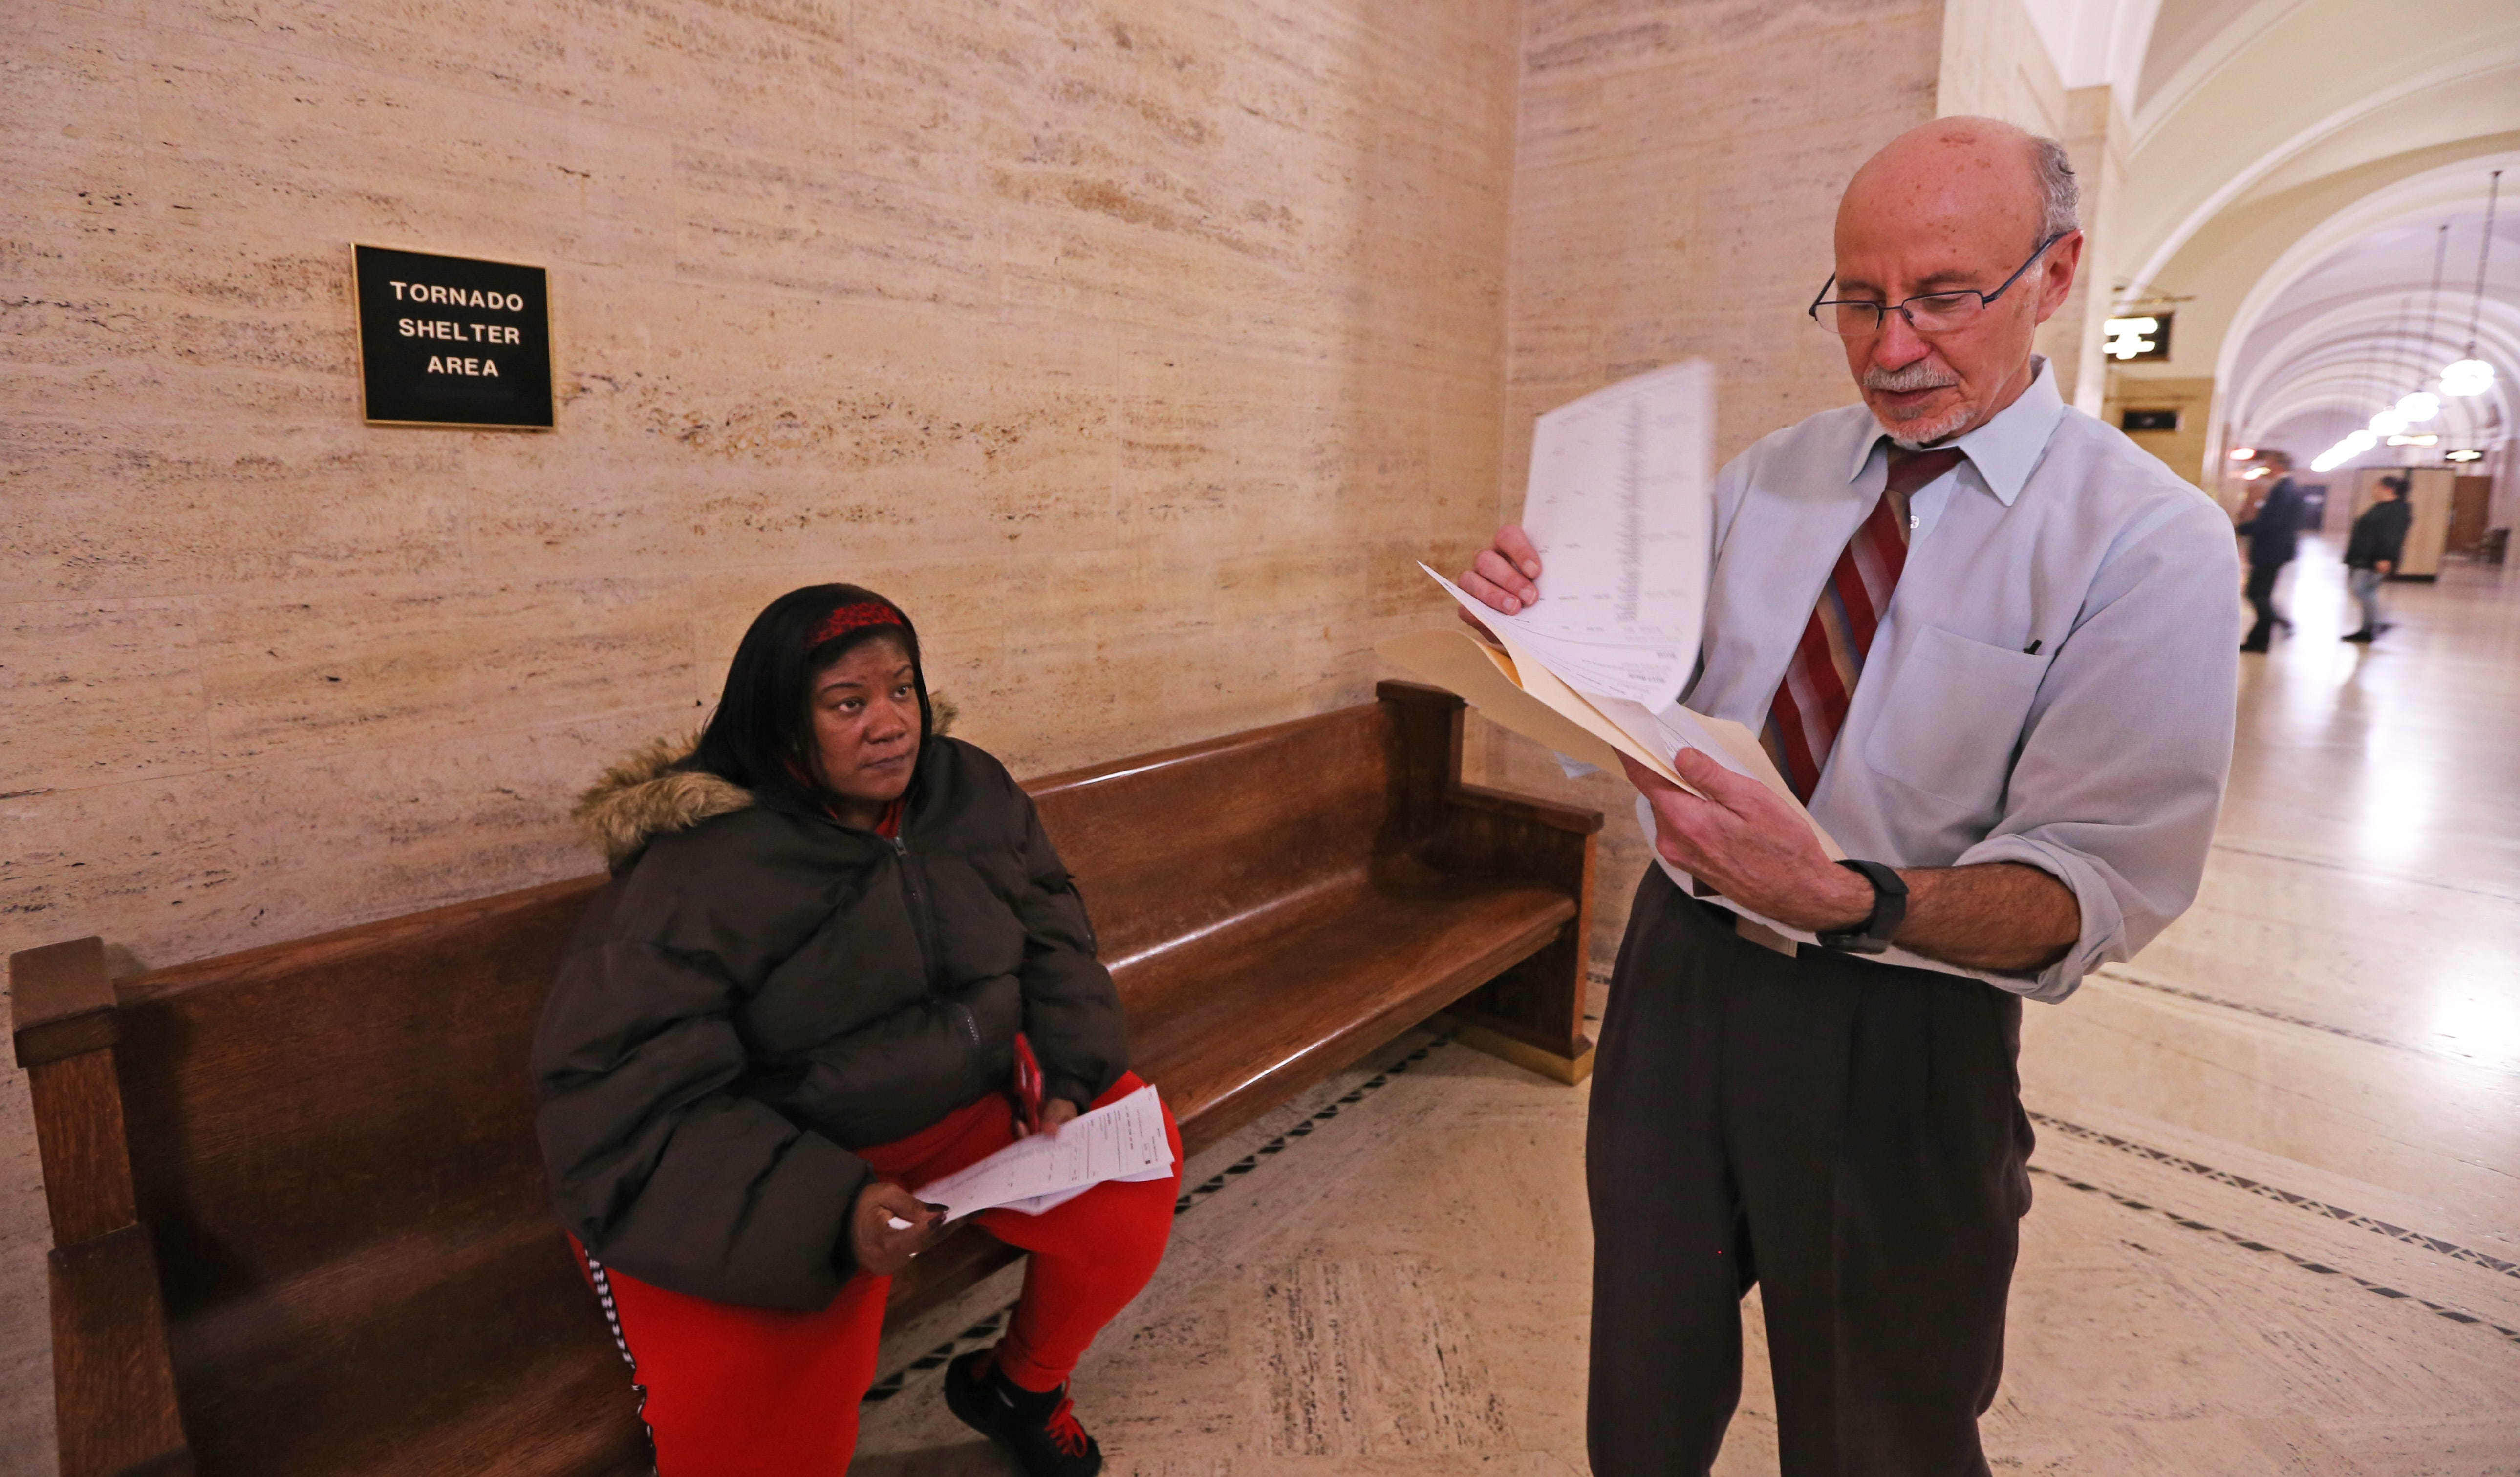 Christy  Conery, left, meets with eviction defense attorney Mark Silverman following her court case on Jan. 30, 2020. Judge Pedro Colón ruled in favor of the tenant and found that the landlord had not given a prior five-day right to cure notice.  Conery was not evicted, but moved out of the property a month later.